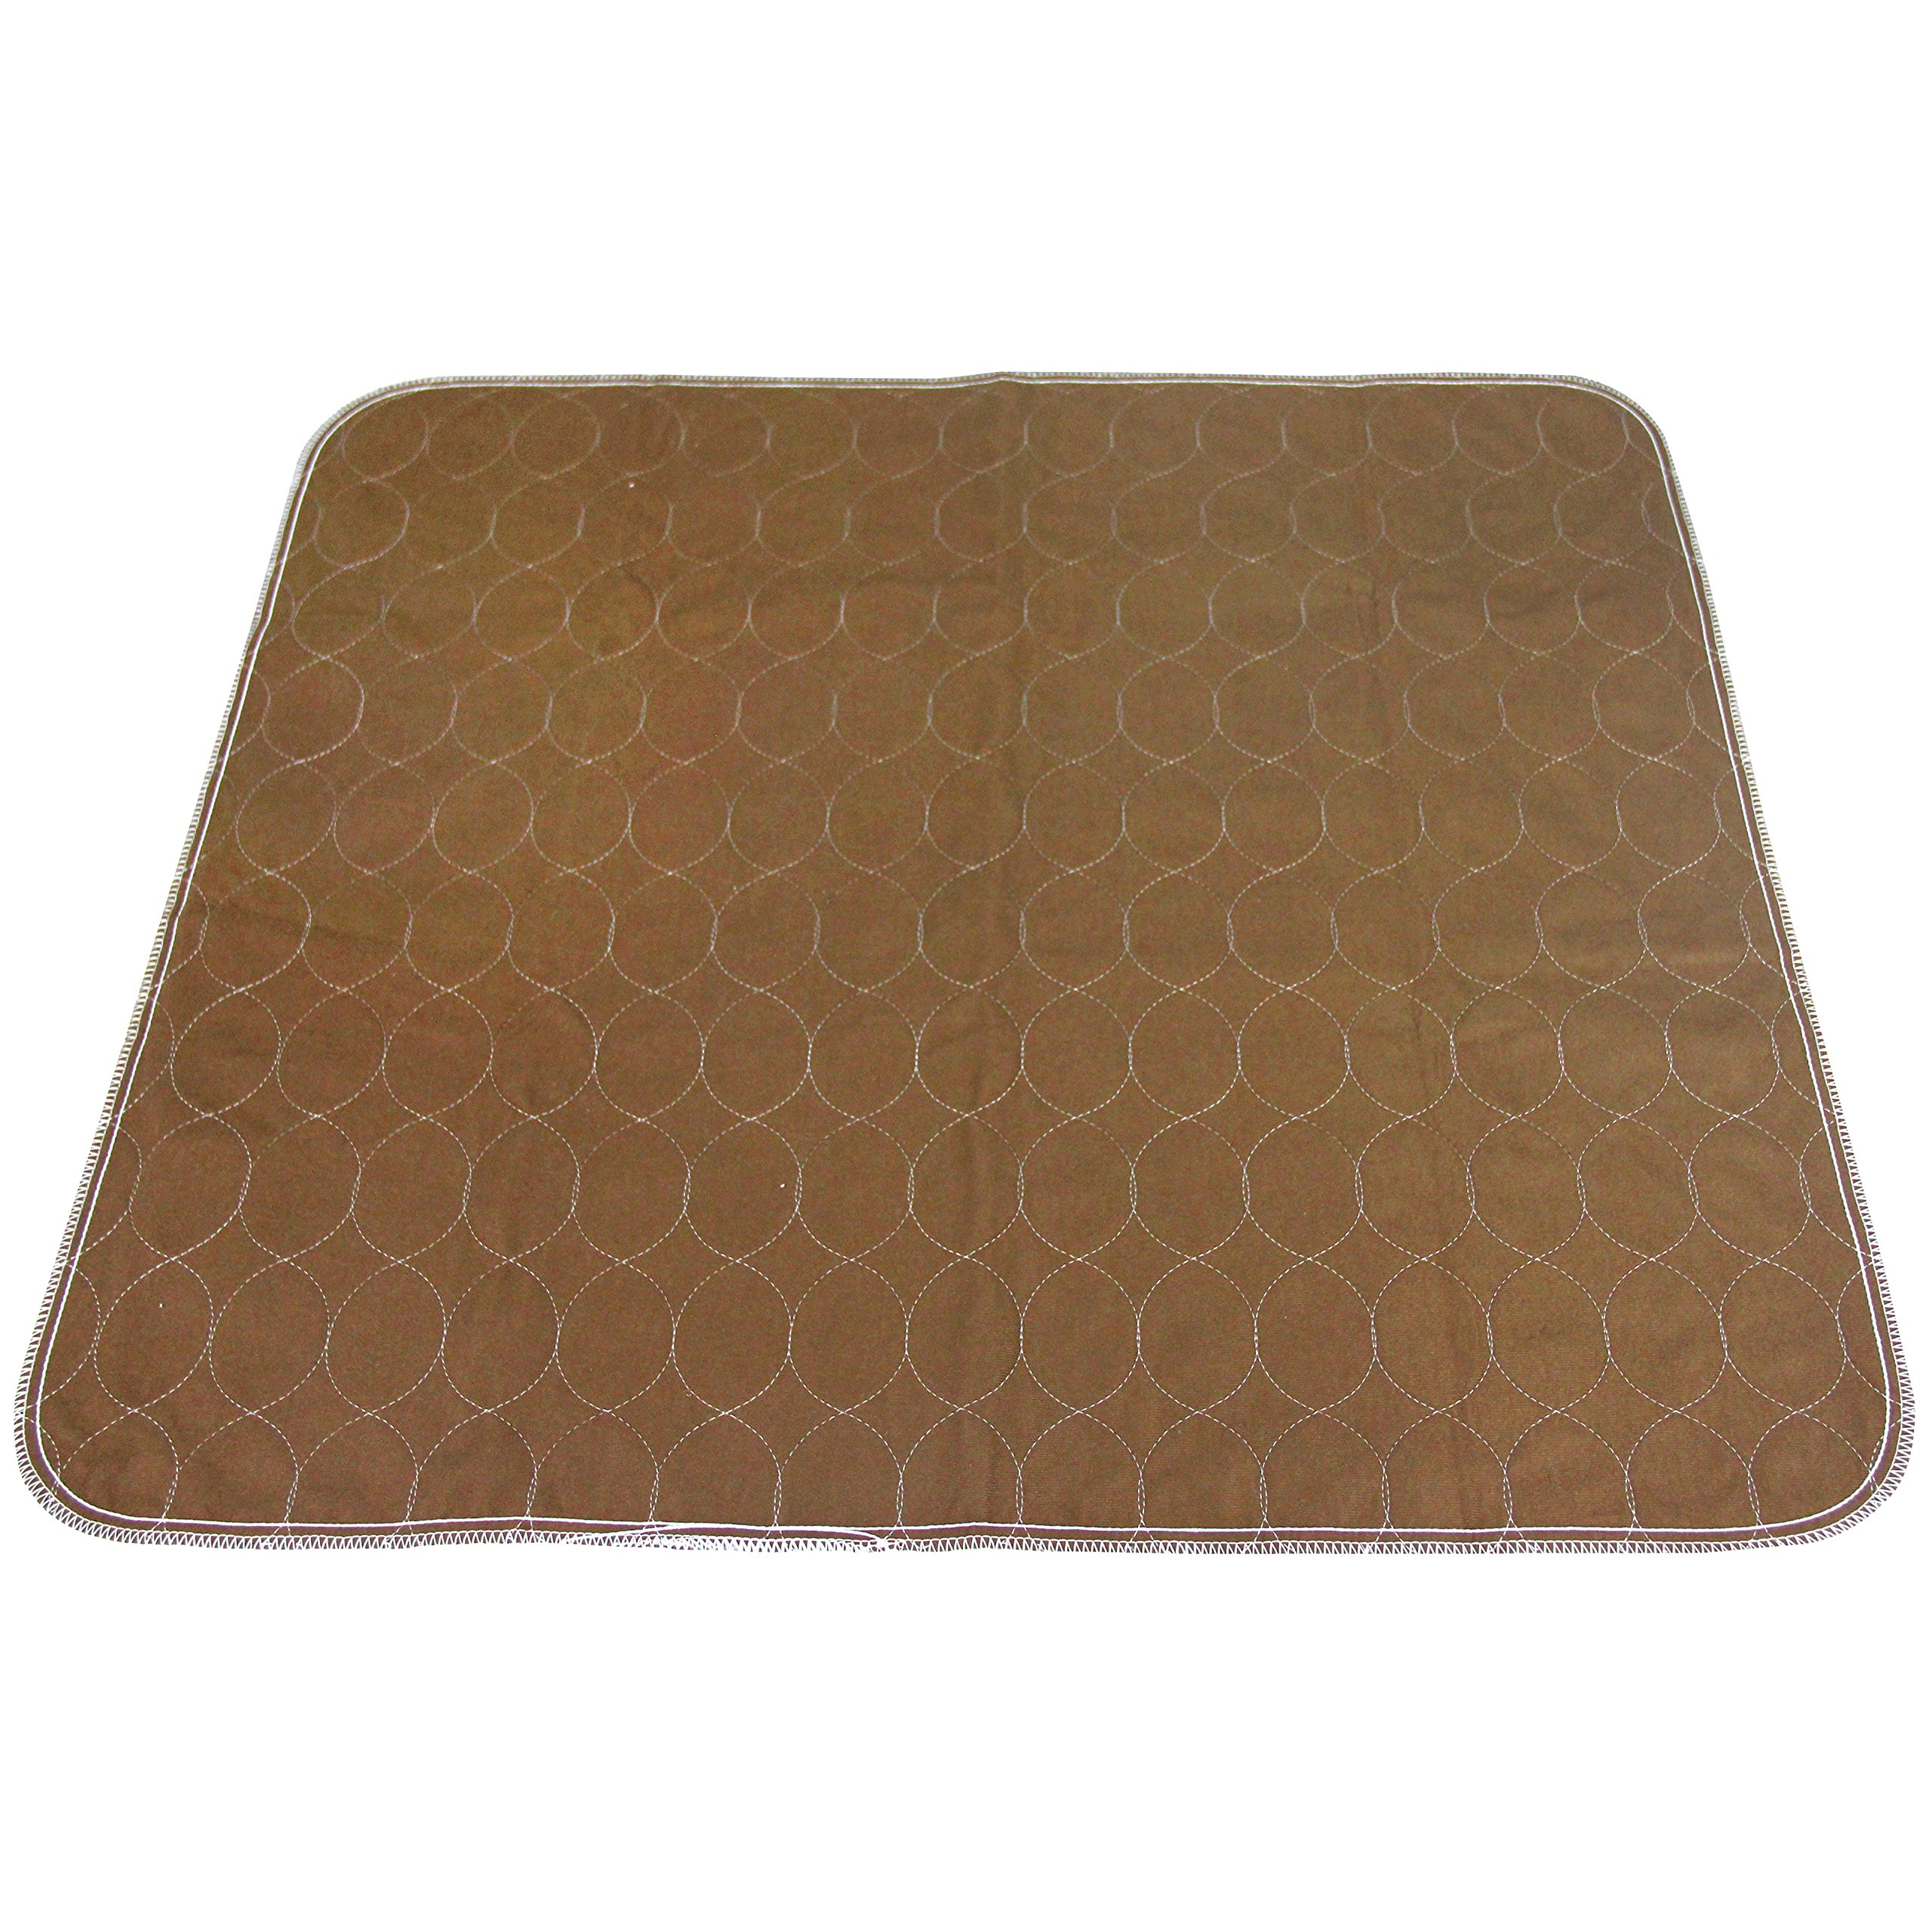 Paw Legend Reusable Dog Pee Pads (2 Pack) of 30''x32'' - Washable Dog Training Pads, Large Travel Pad for Pets(1 Brown & 1 Tan) by Paw Legend (Image #5)